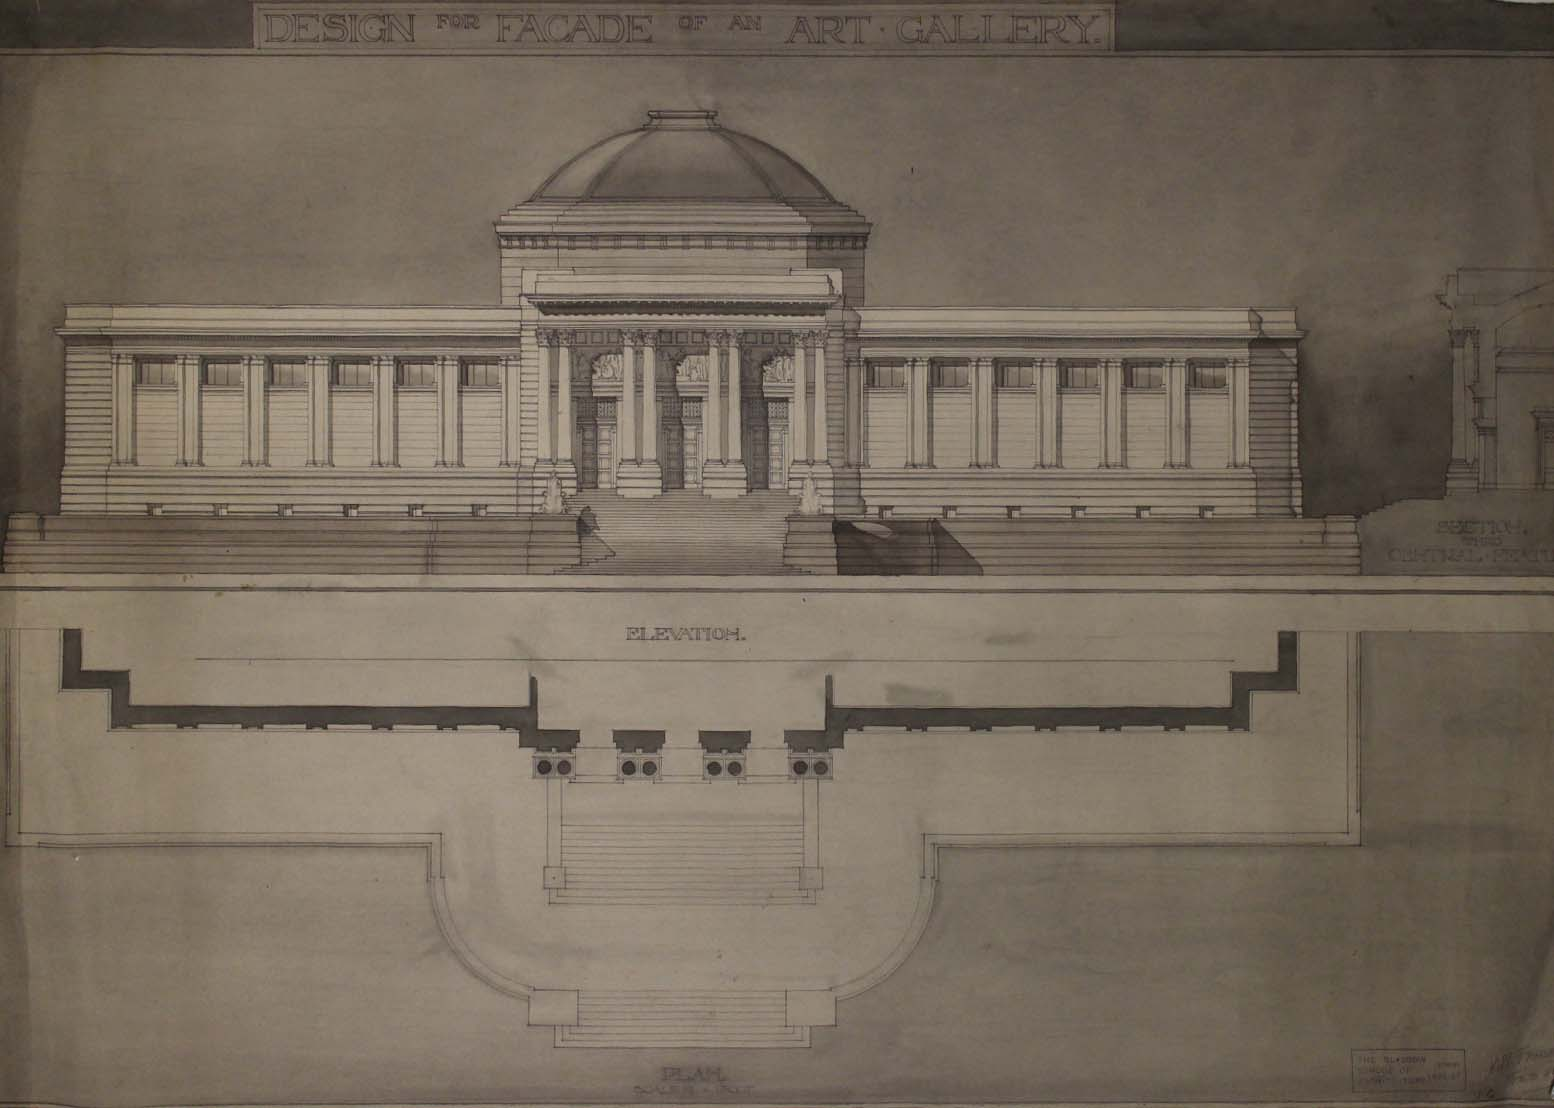 Facade for an Art Gallery dated 21st February 1927 (Archive Reference: DC 088/1/3/1)